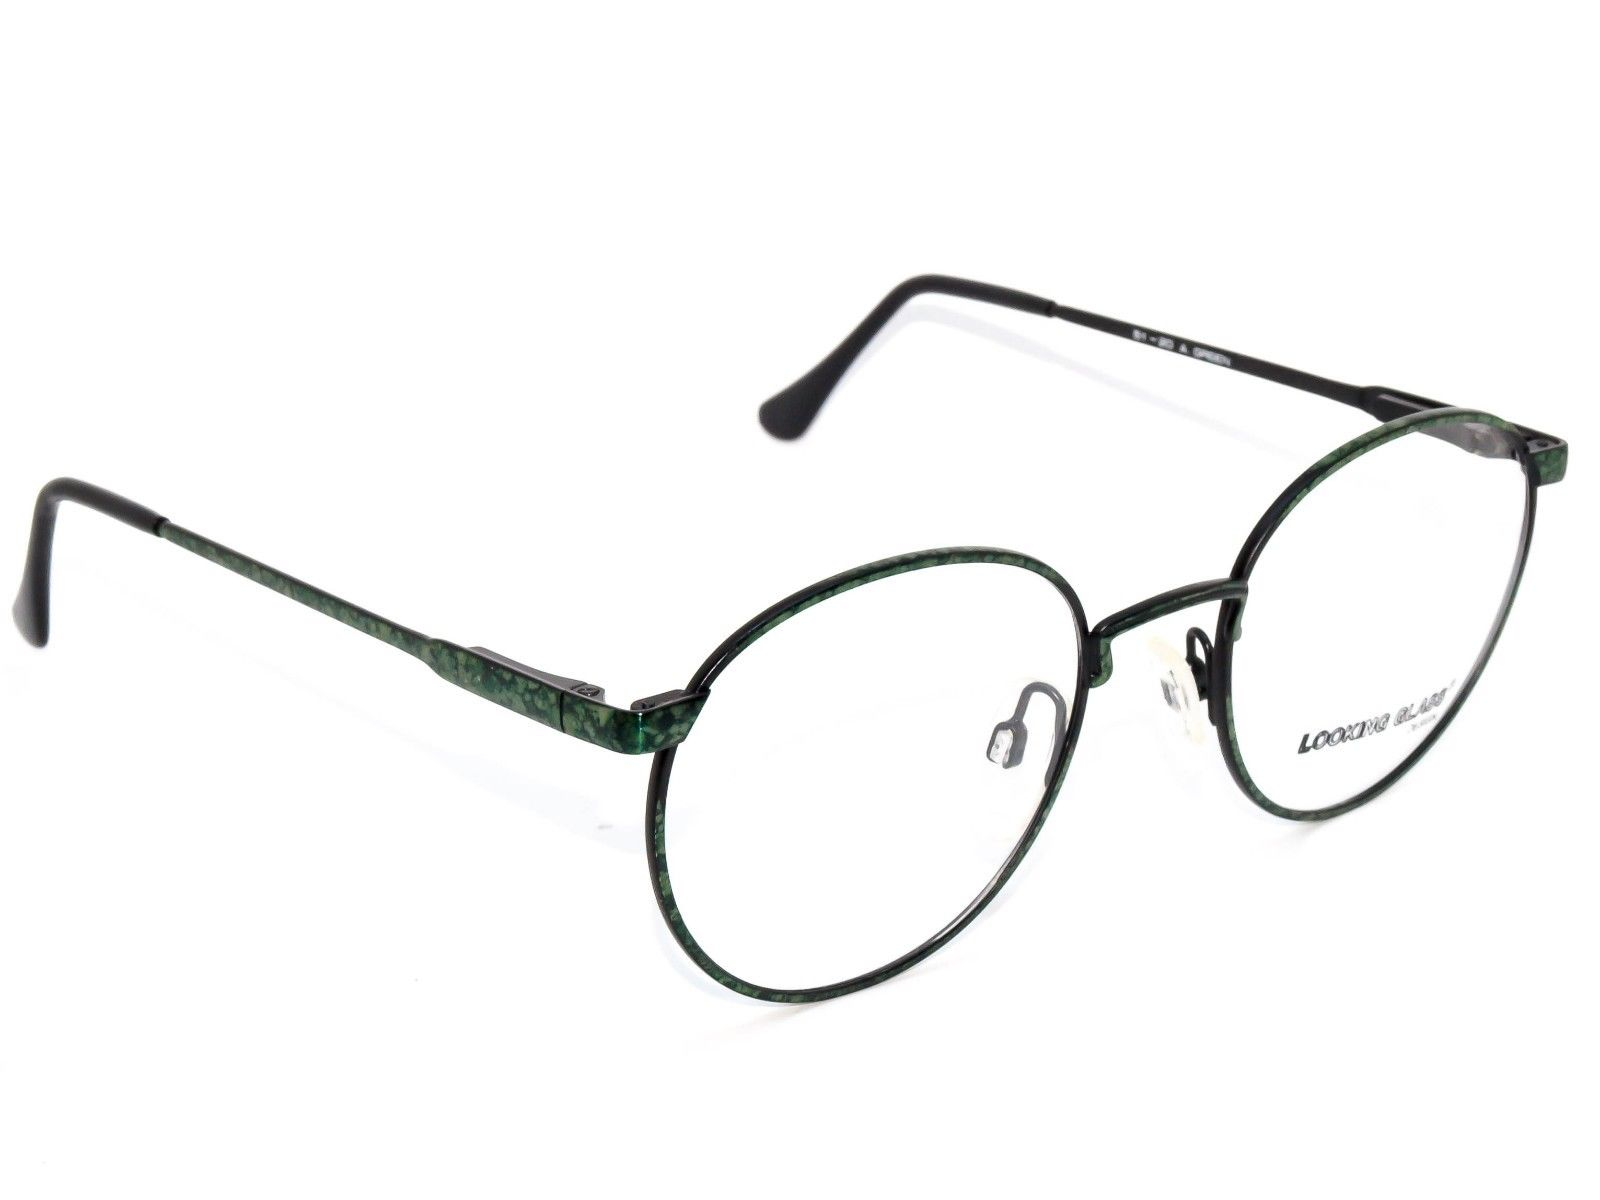 Looking Glass L7032 Green Sunglasses